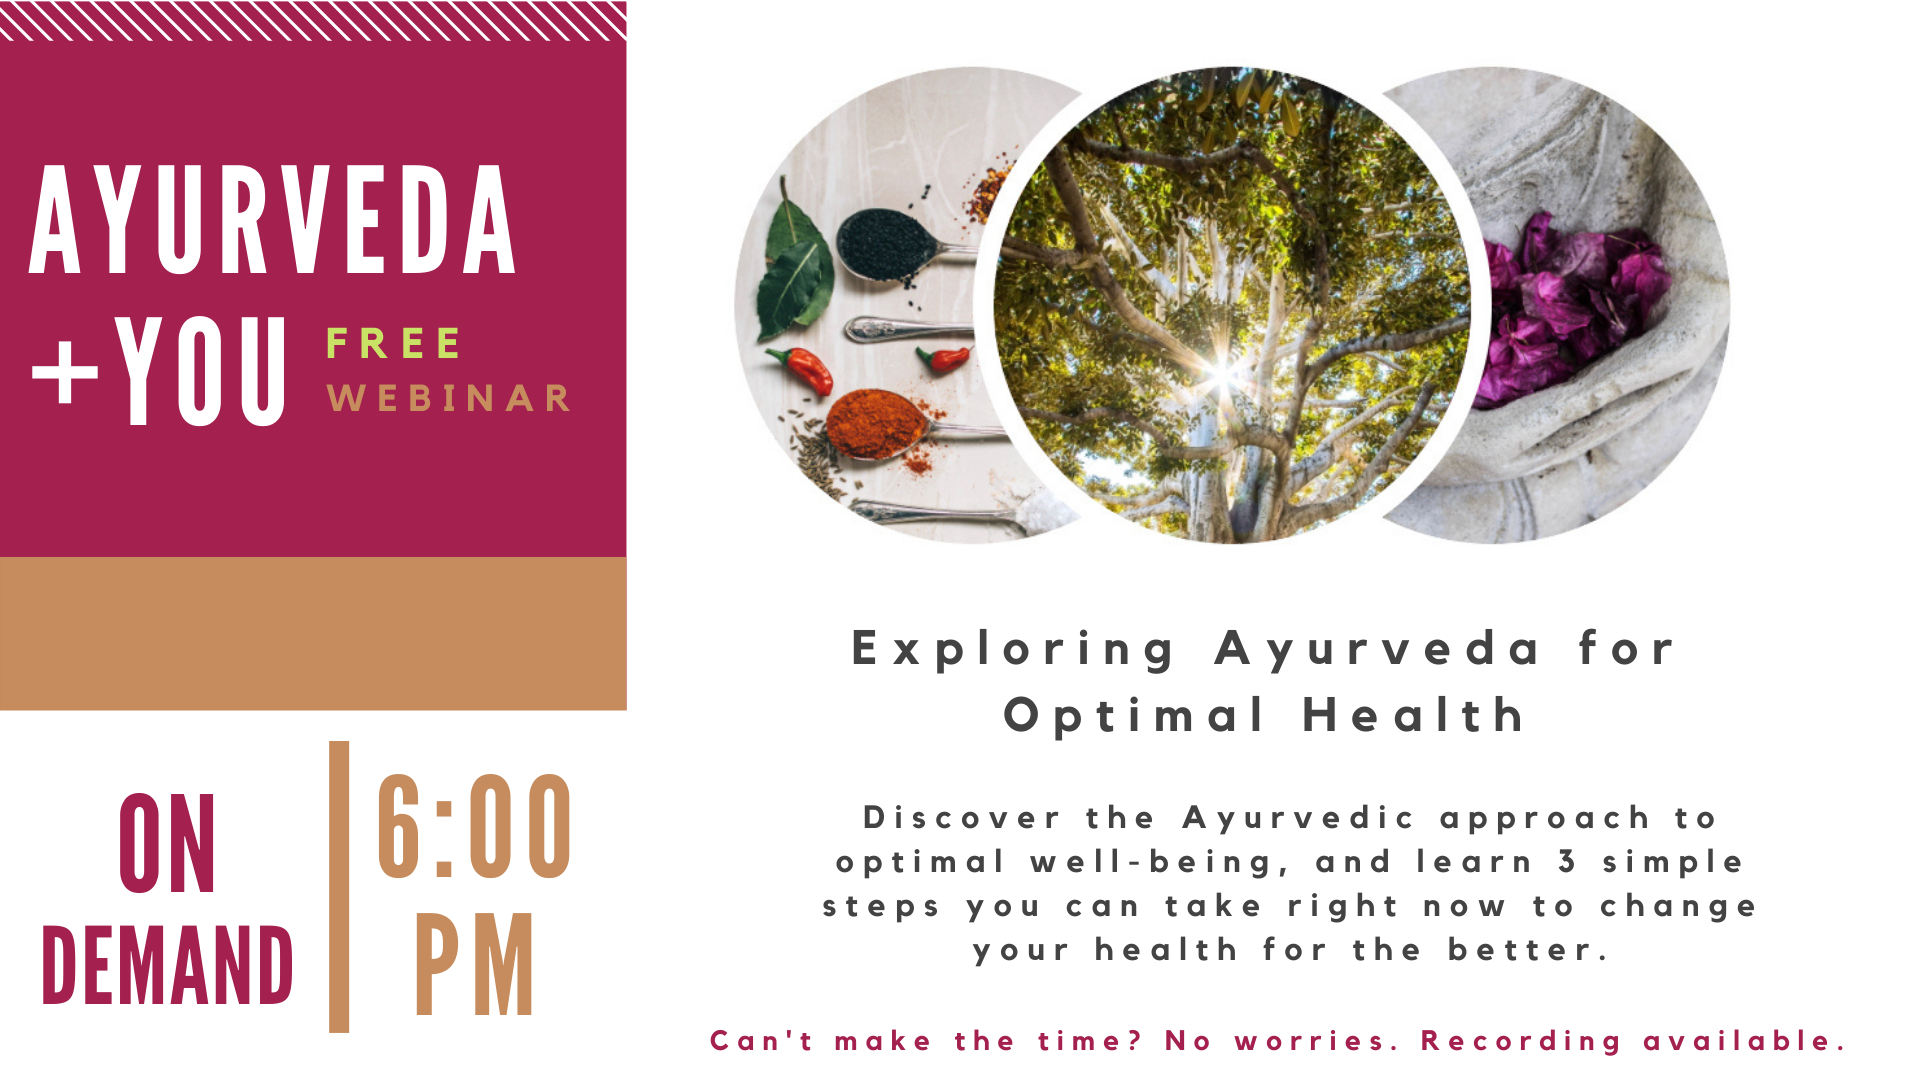 Free Webinar: Ayurveda + You - Exploring Ayurveda for Optimal Health